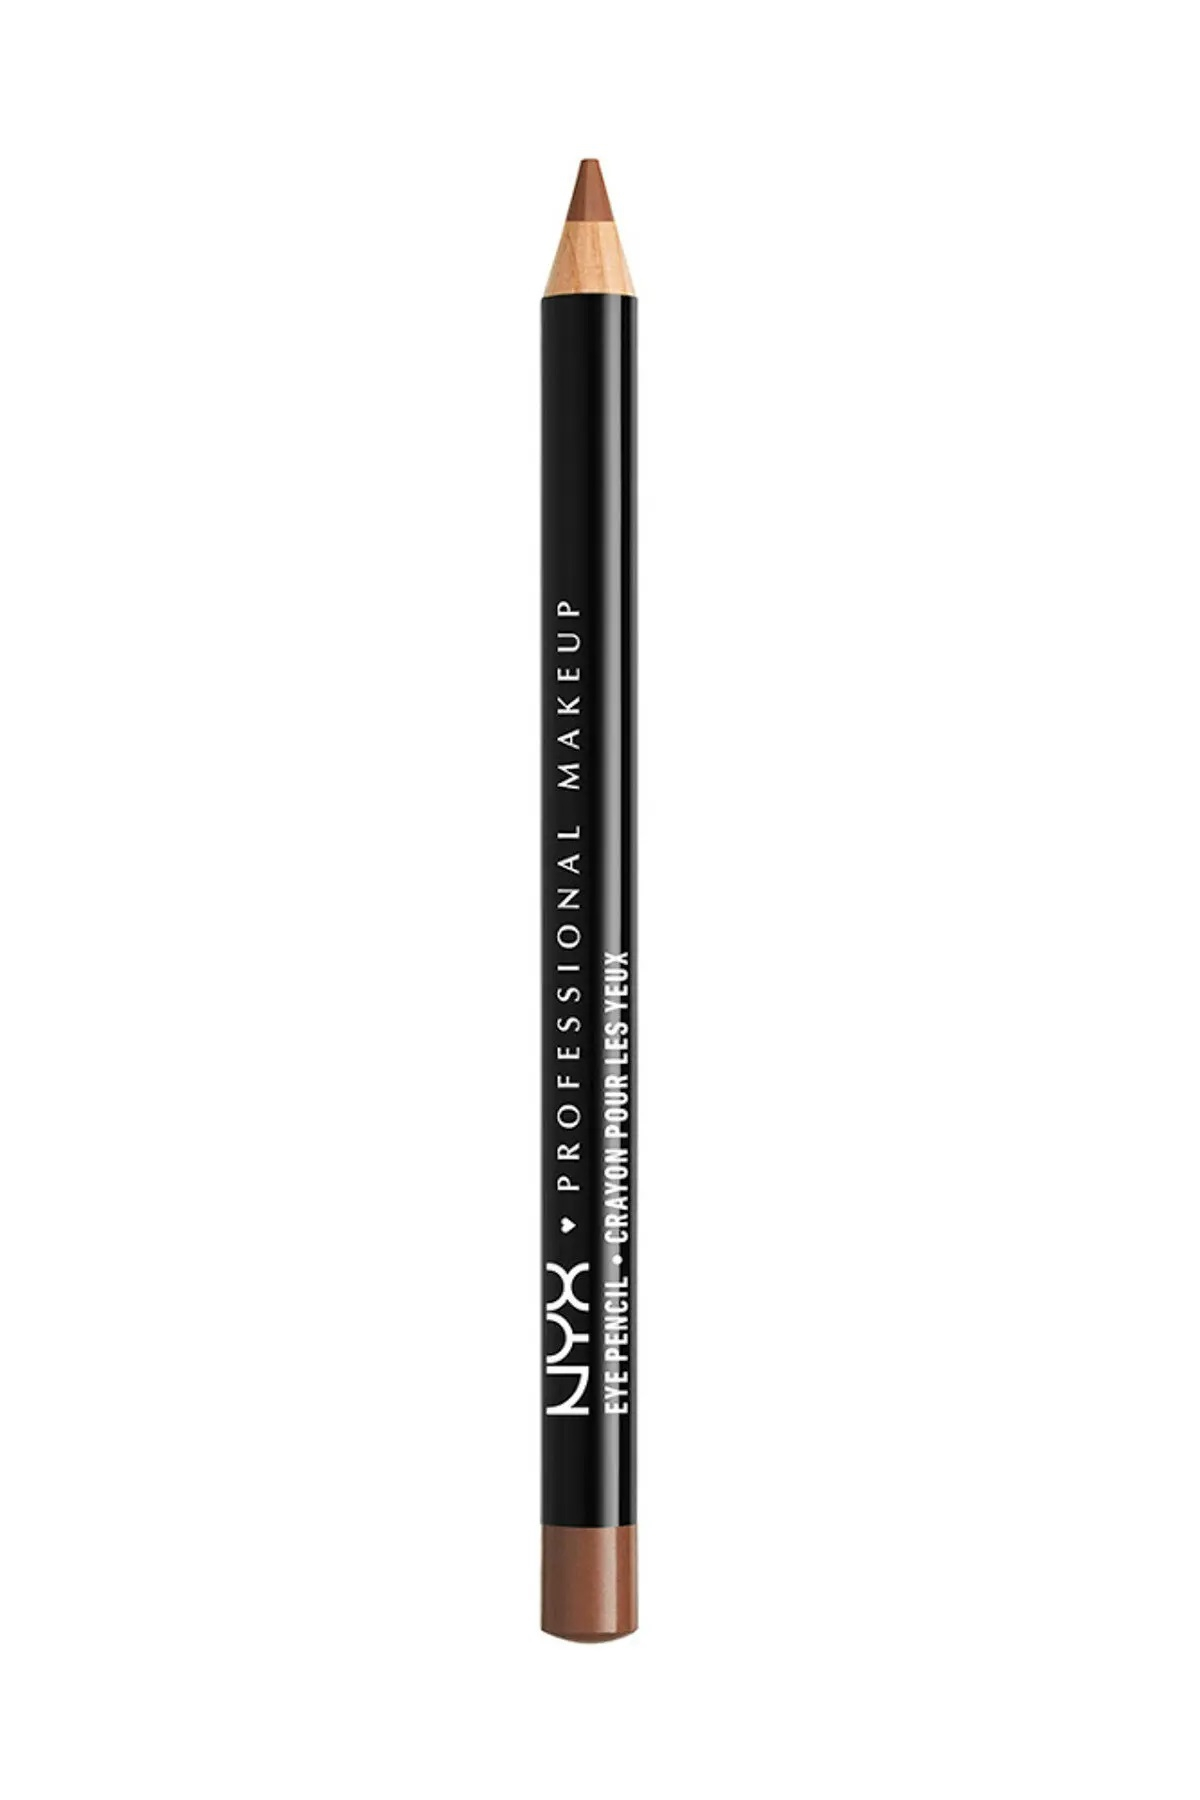 #NYX SLIM EYE PENCIL - AUBURN